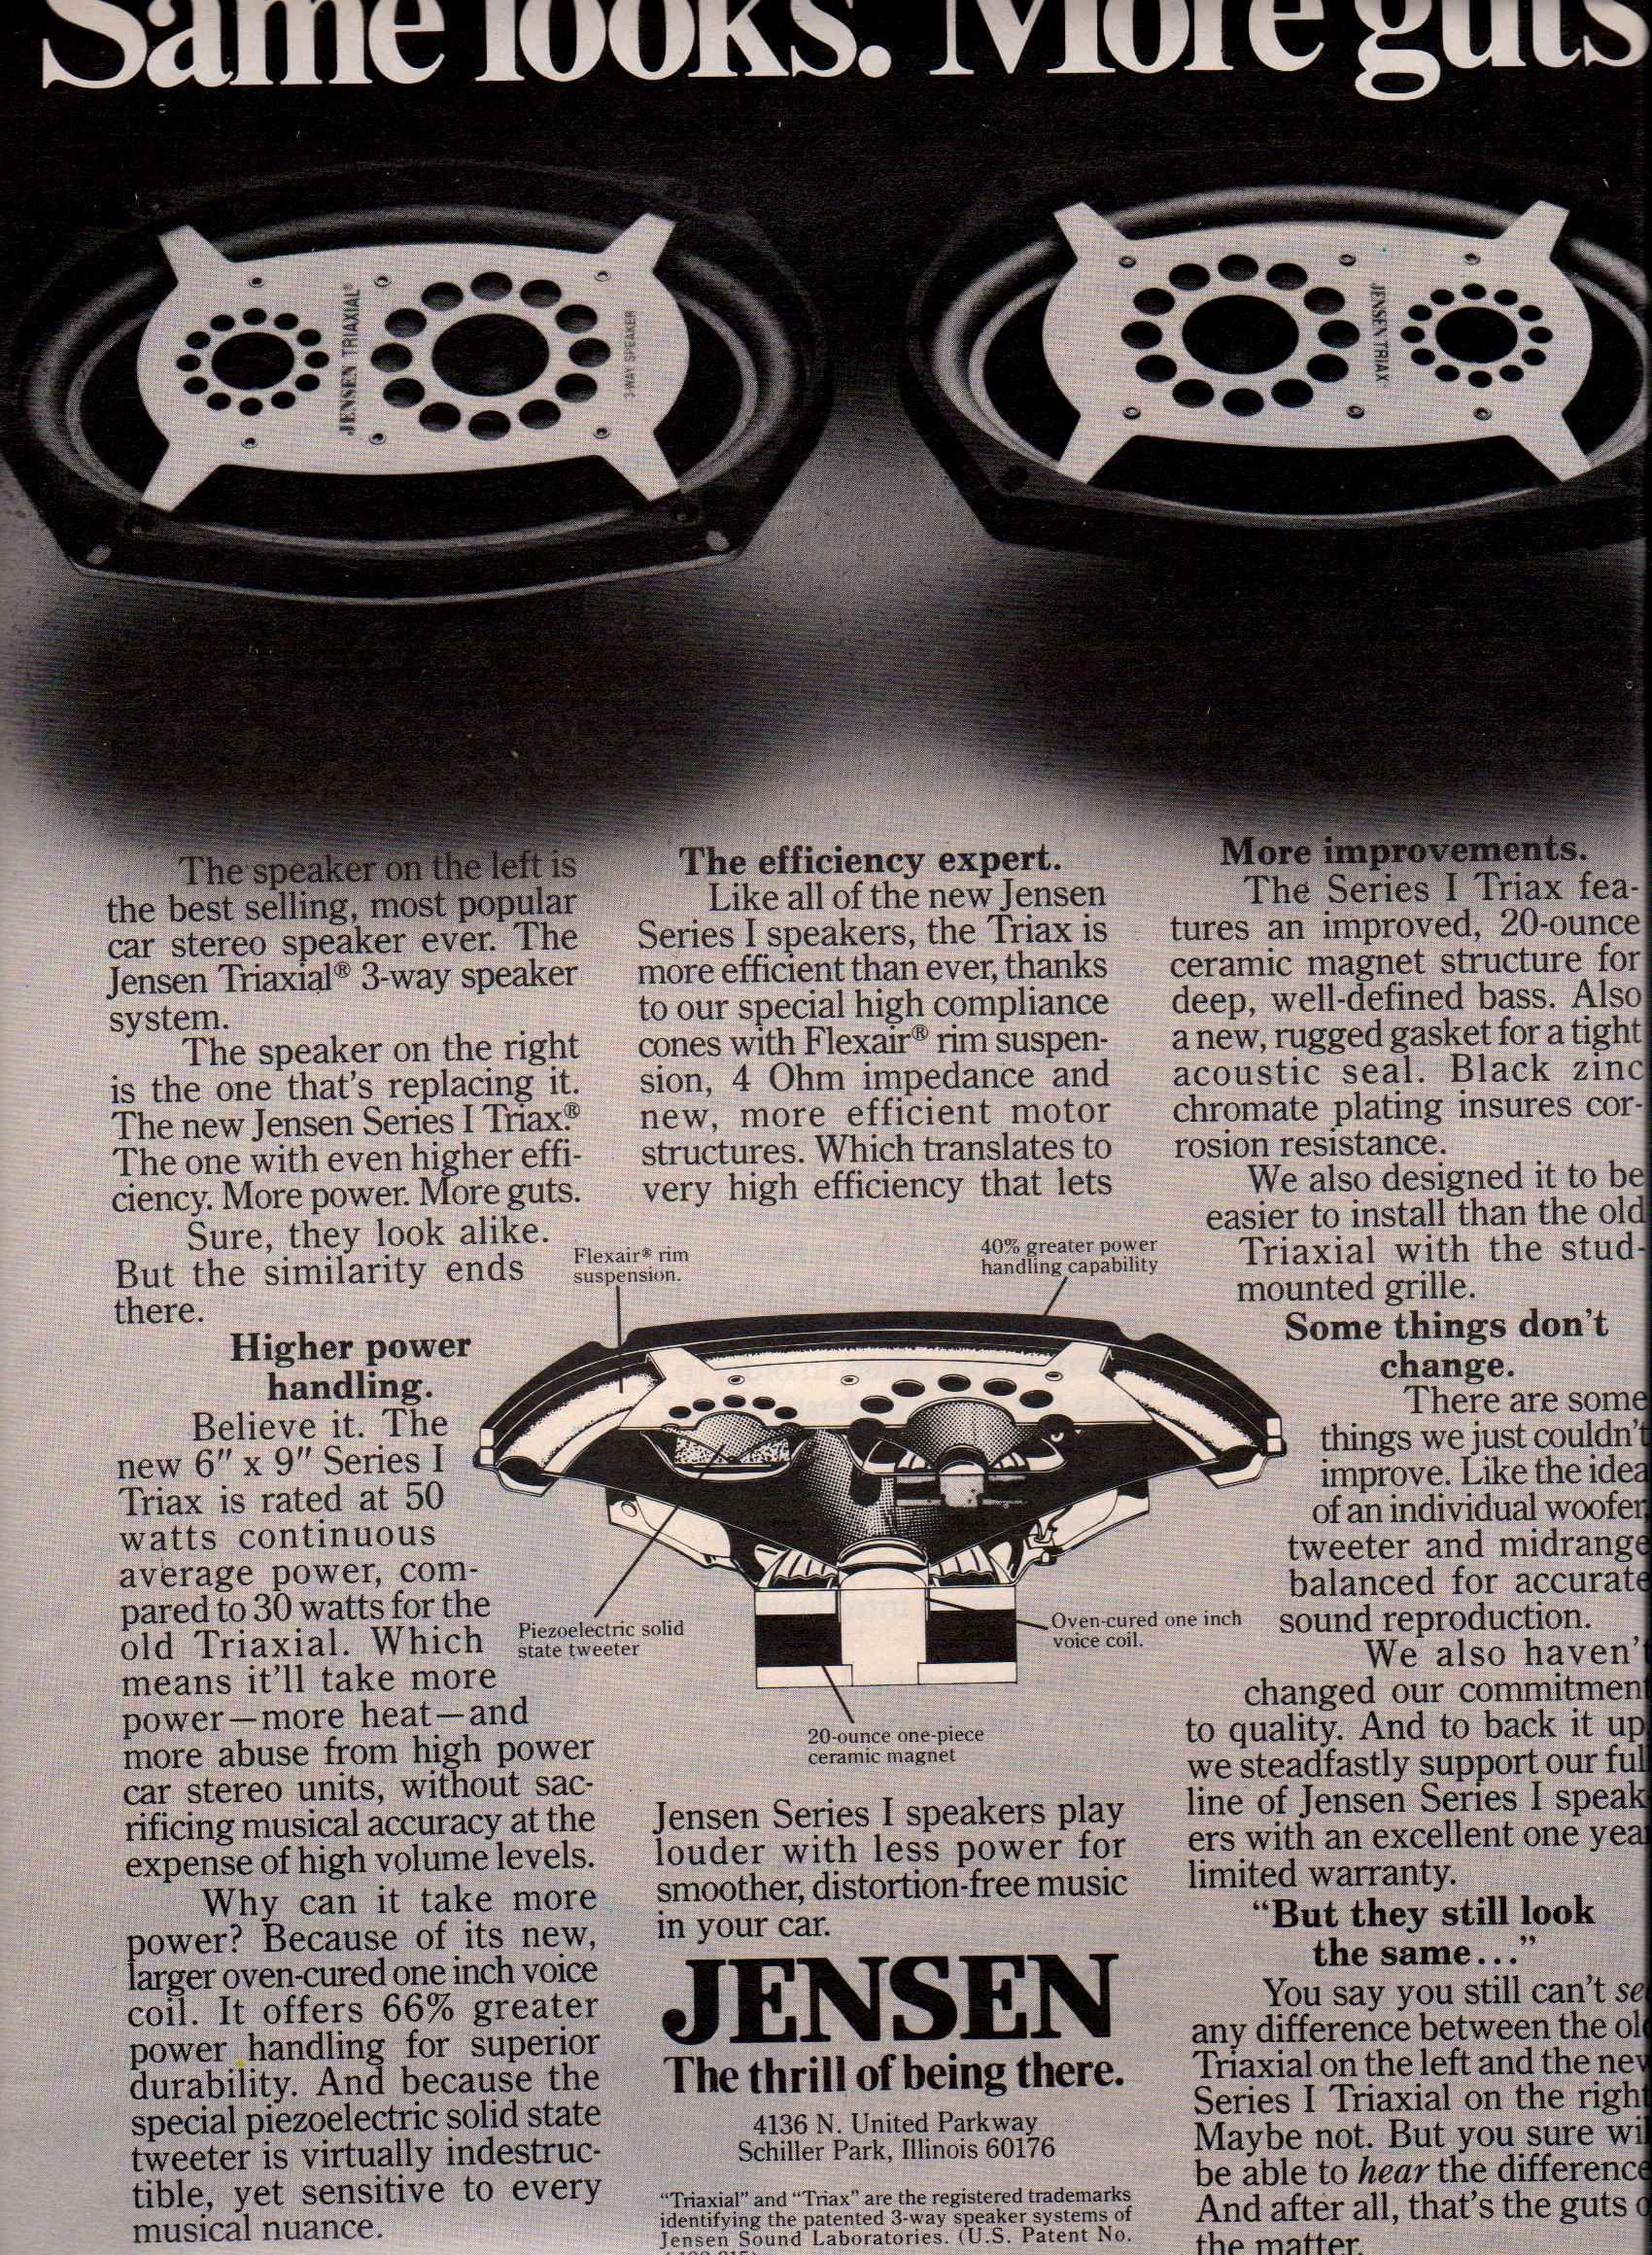 medium resolution of 1980 jensen series 1 triax speakers ad rolling stone college papers spring 1980